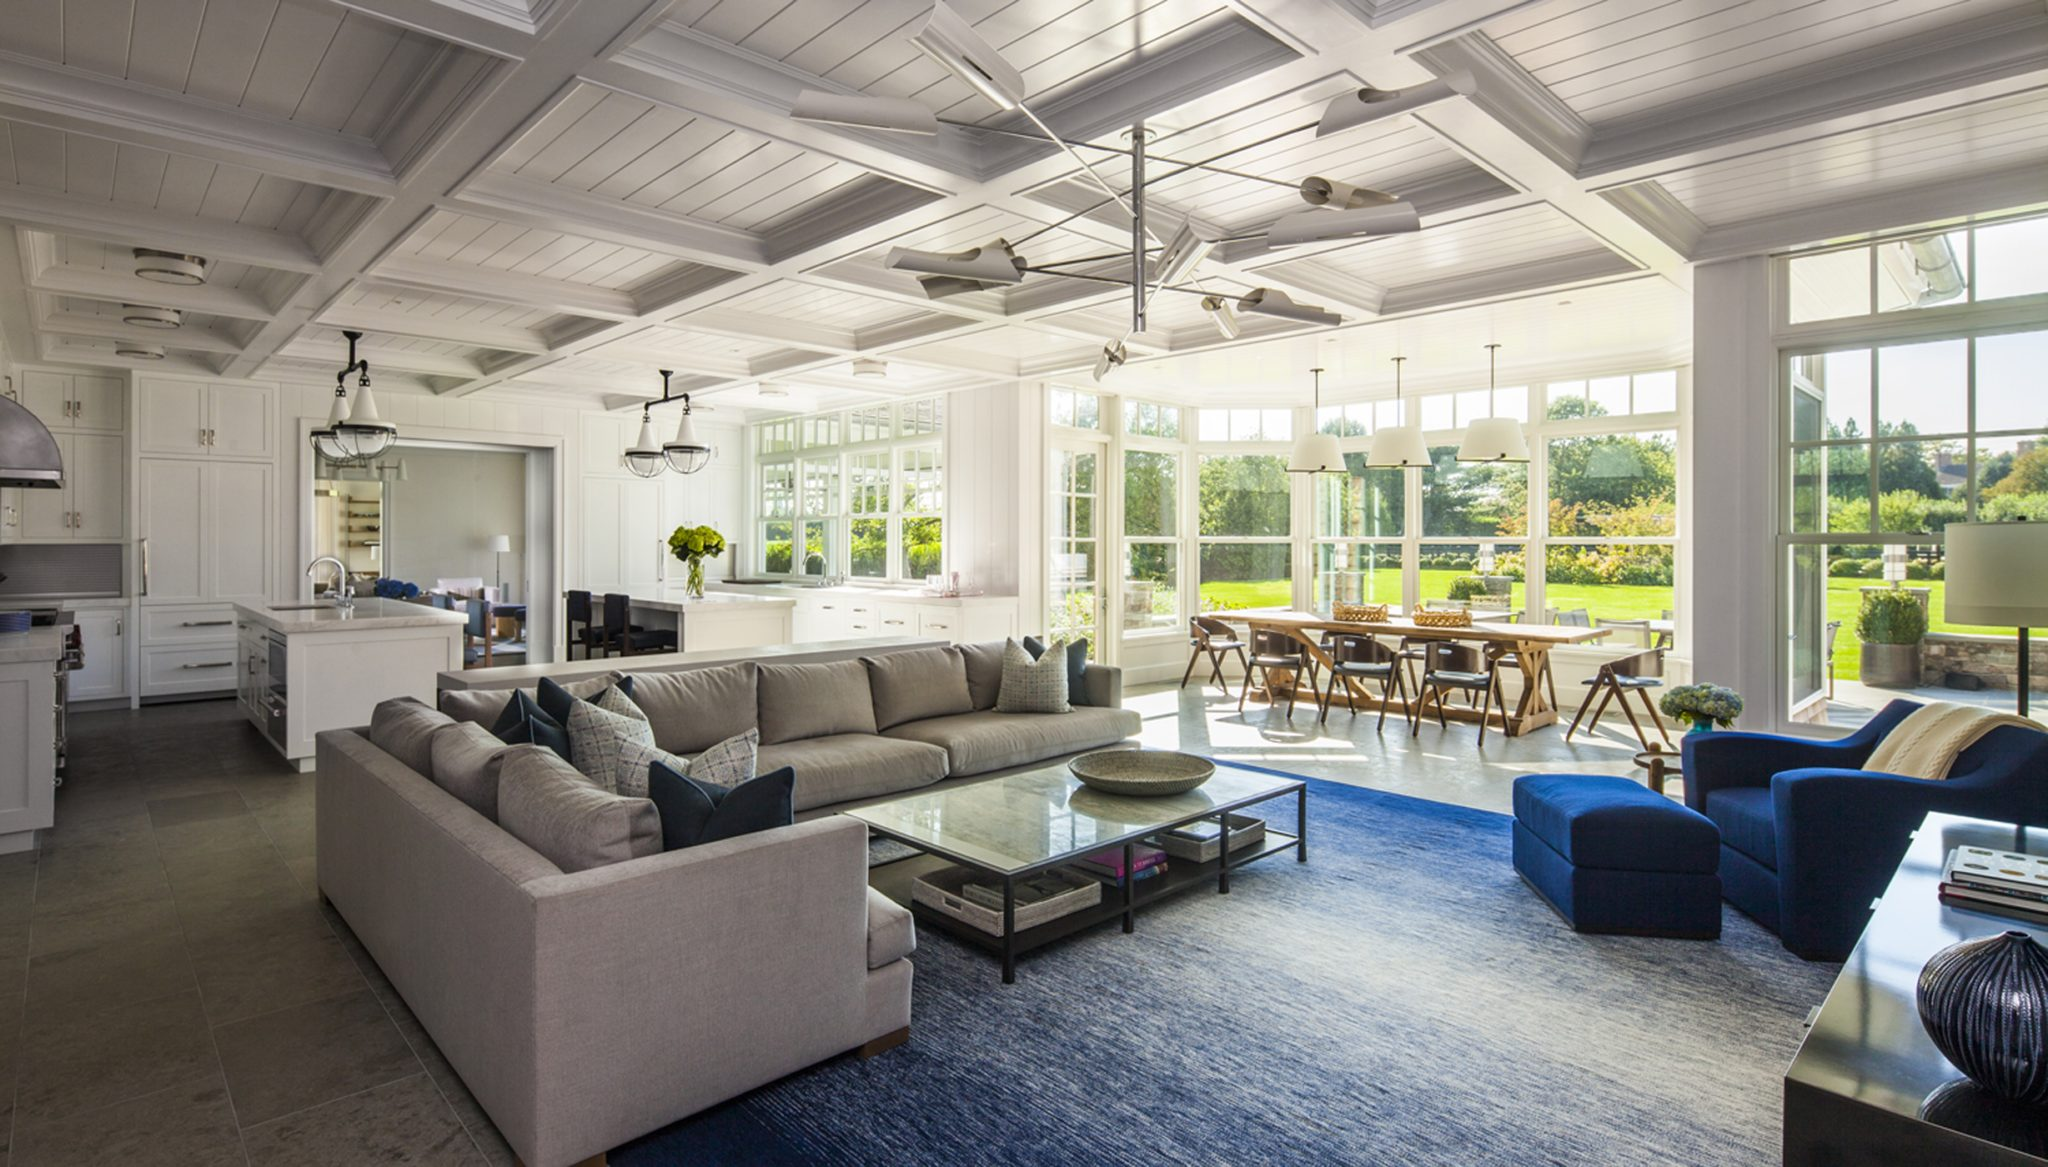 Hamptons residence - coffered ceiling in a family room that's open to kitchen and dining area. By Stephens Design Group